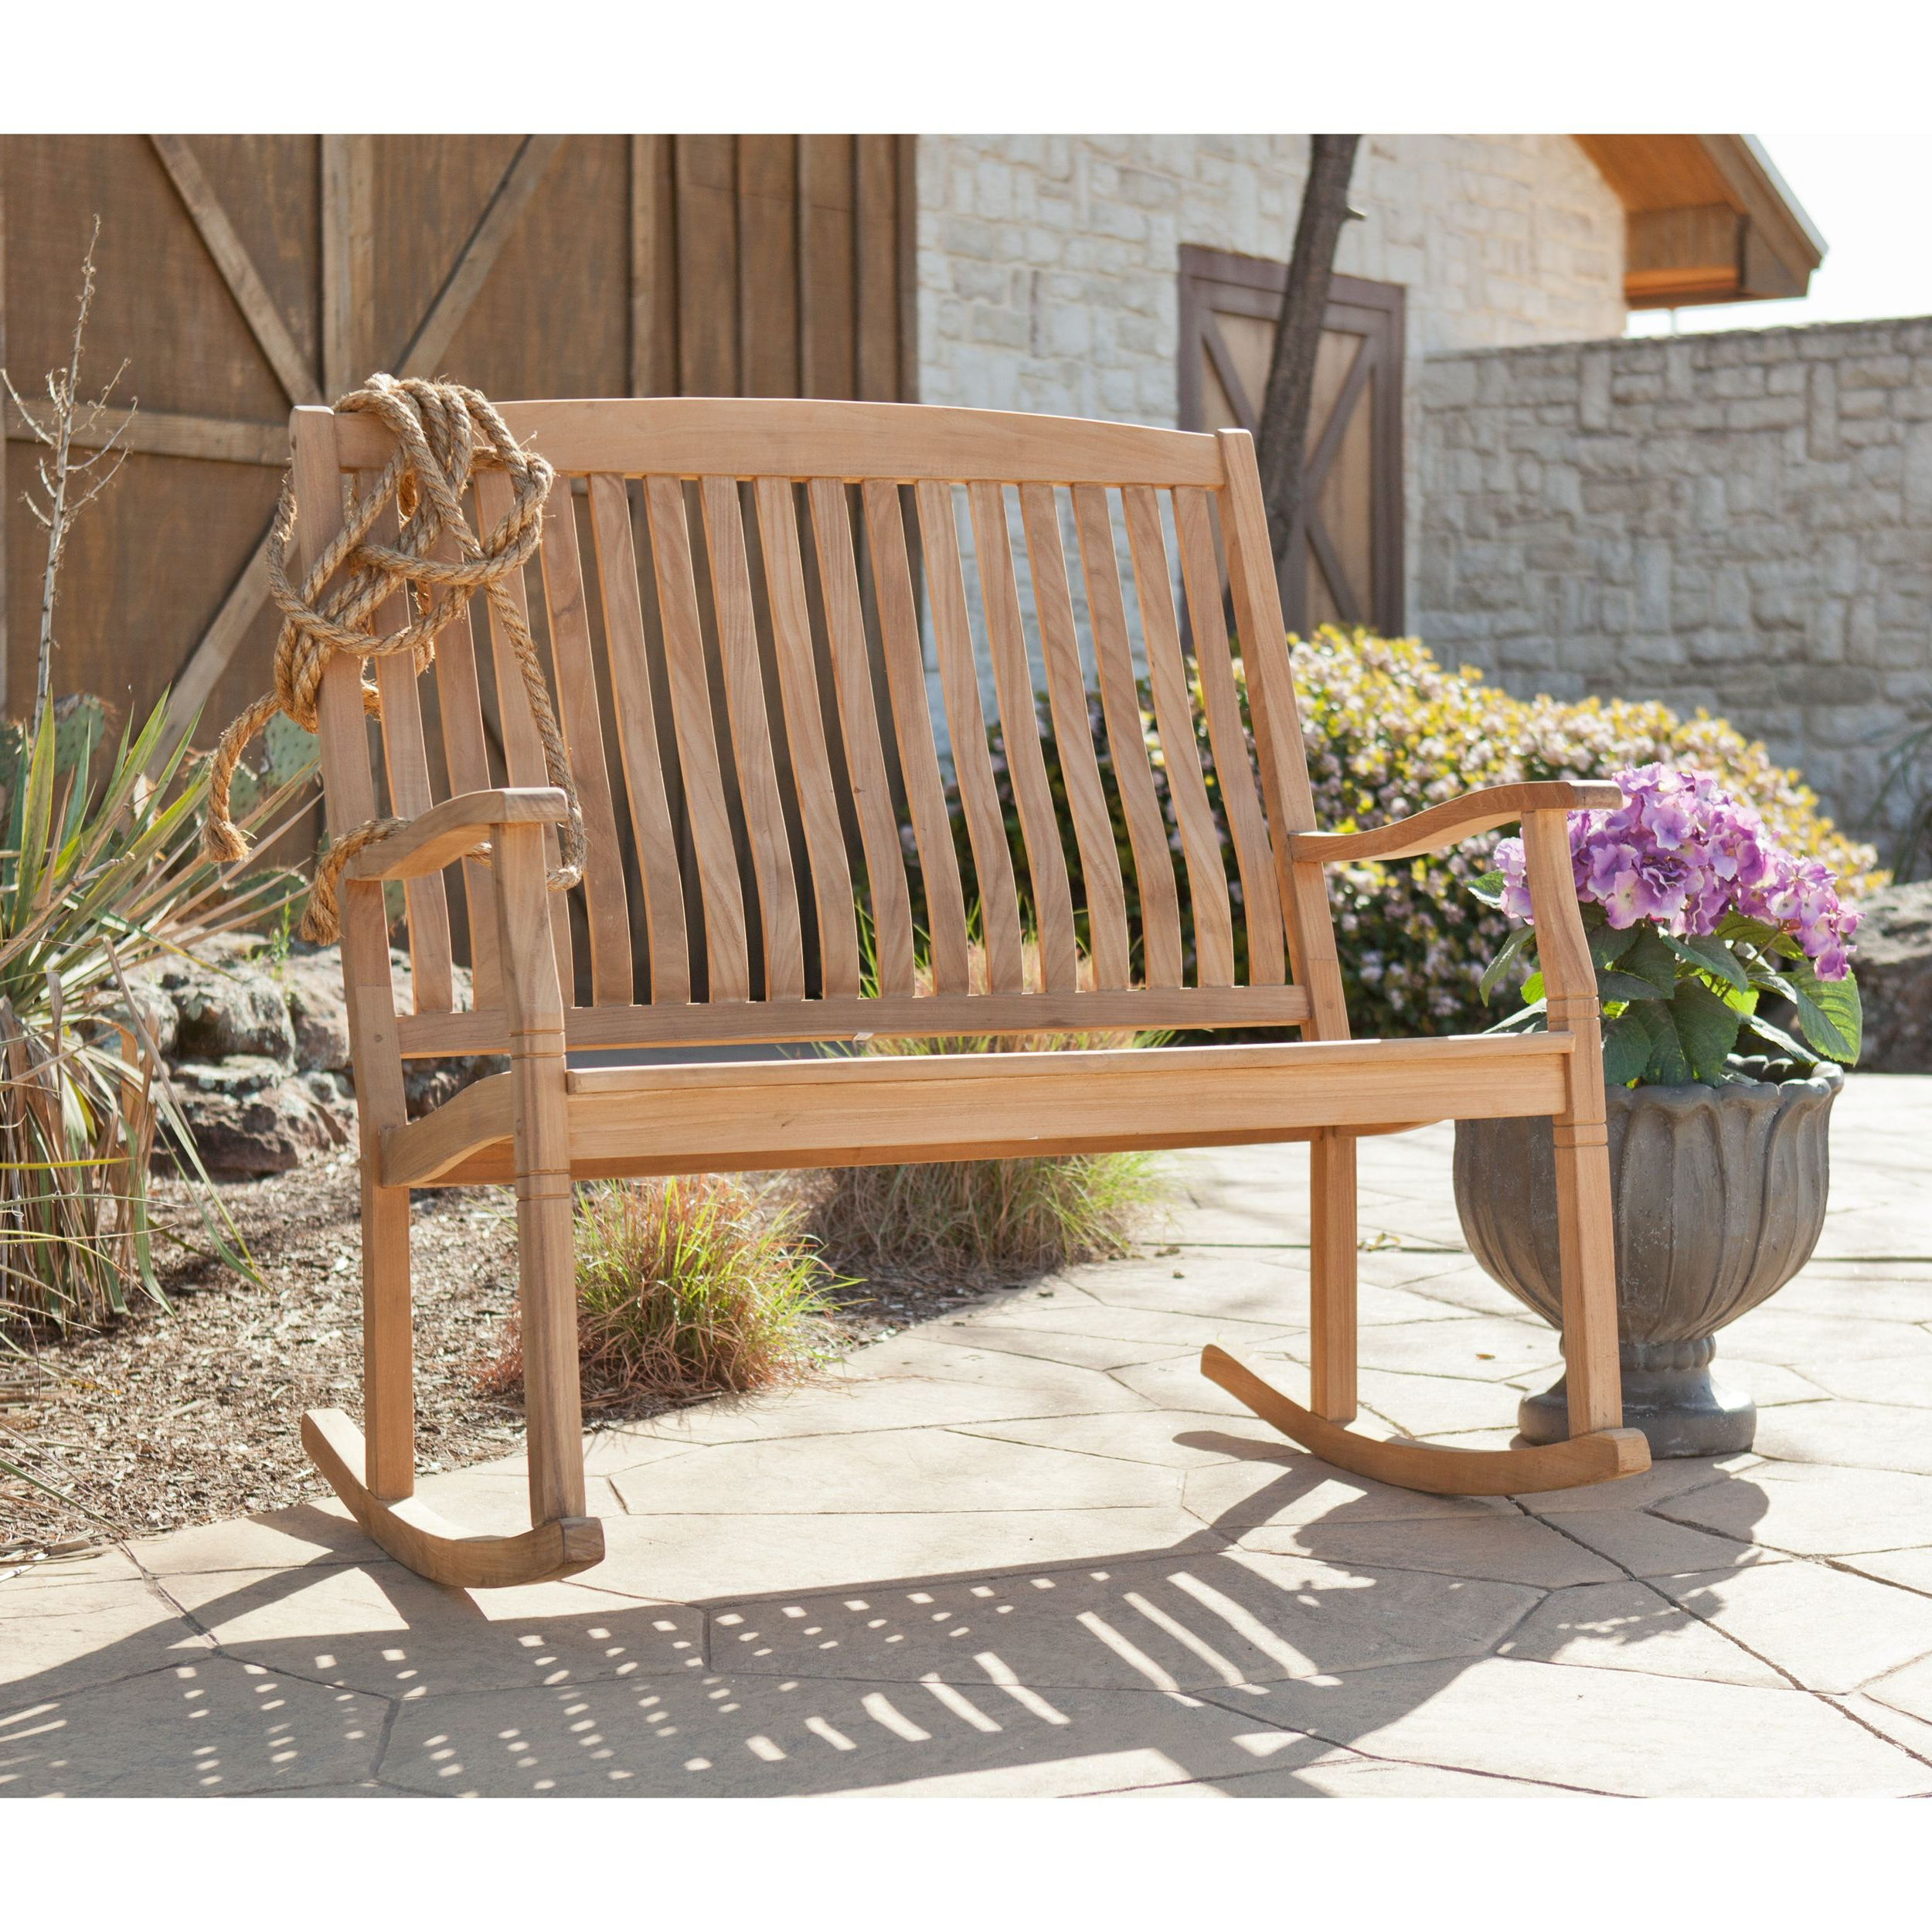 Preferred Teak Glider Benches Regarding The Graceful Yet Rustic Style Of This Teak Glider Bench Is (View 13 of 30)